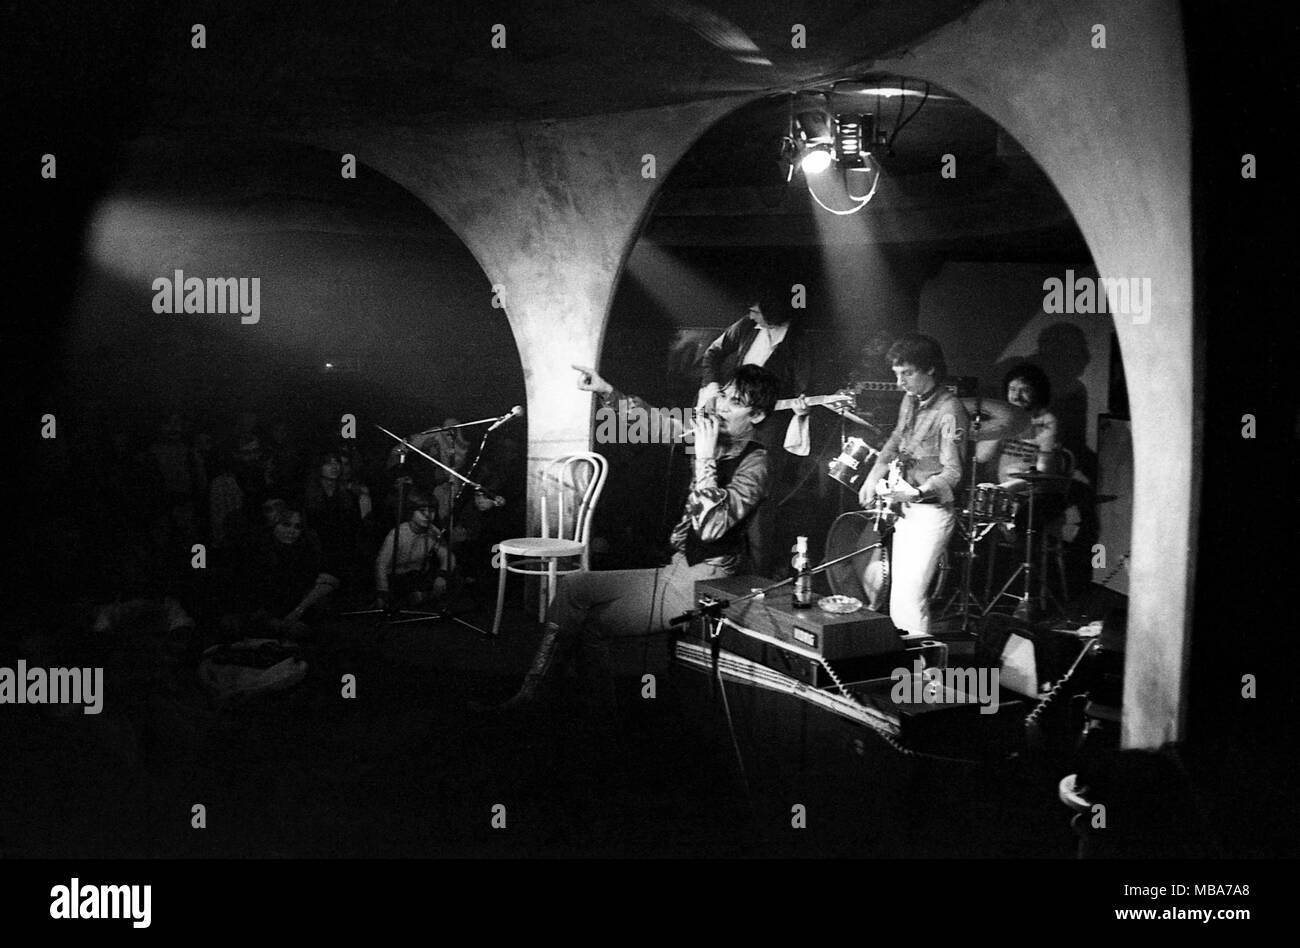 Philippe Gras / Le Pictorium -  Jacques Higelin -  1977  -  France / Ile-de-France (region) / Paris  -  Jacques Higelin, Concert in 1977 - Stock Image